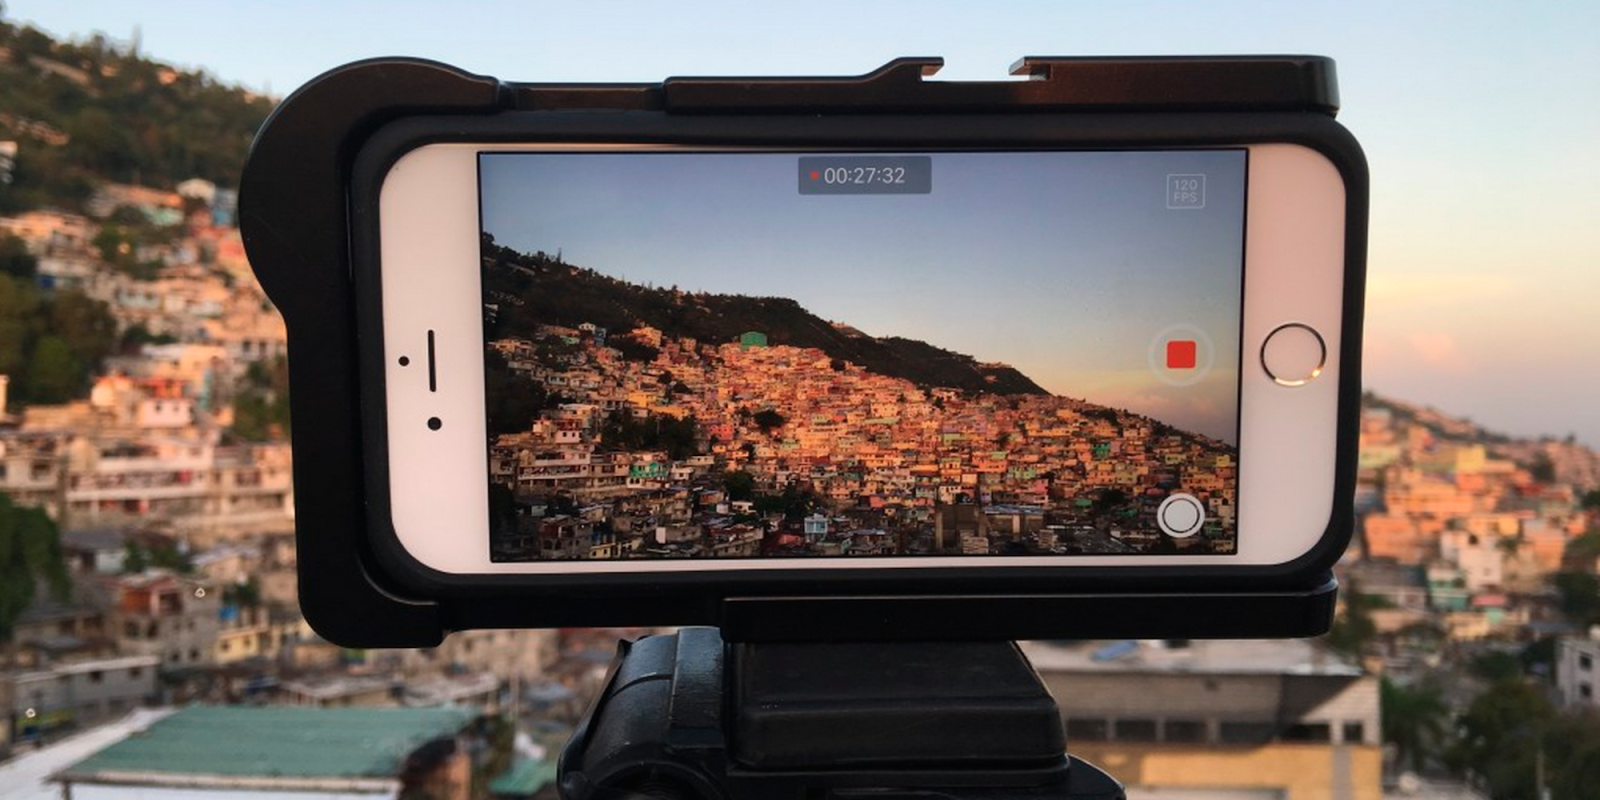 This documentary film was shot entirely in 4K on the new iPhone 6s Plus